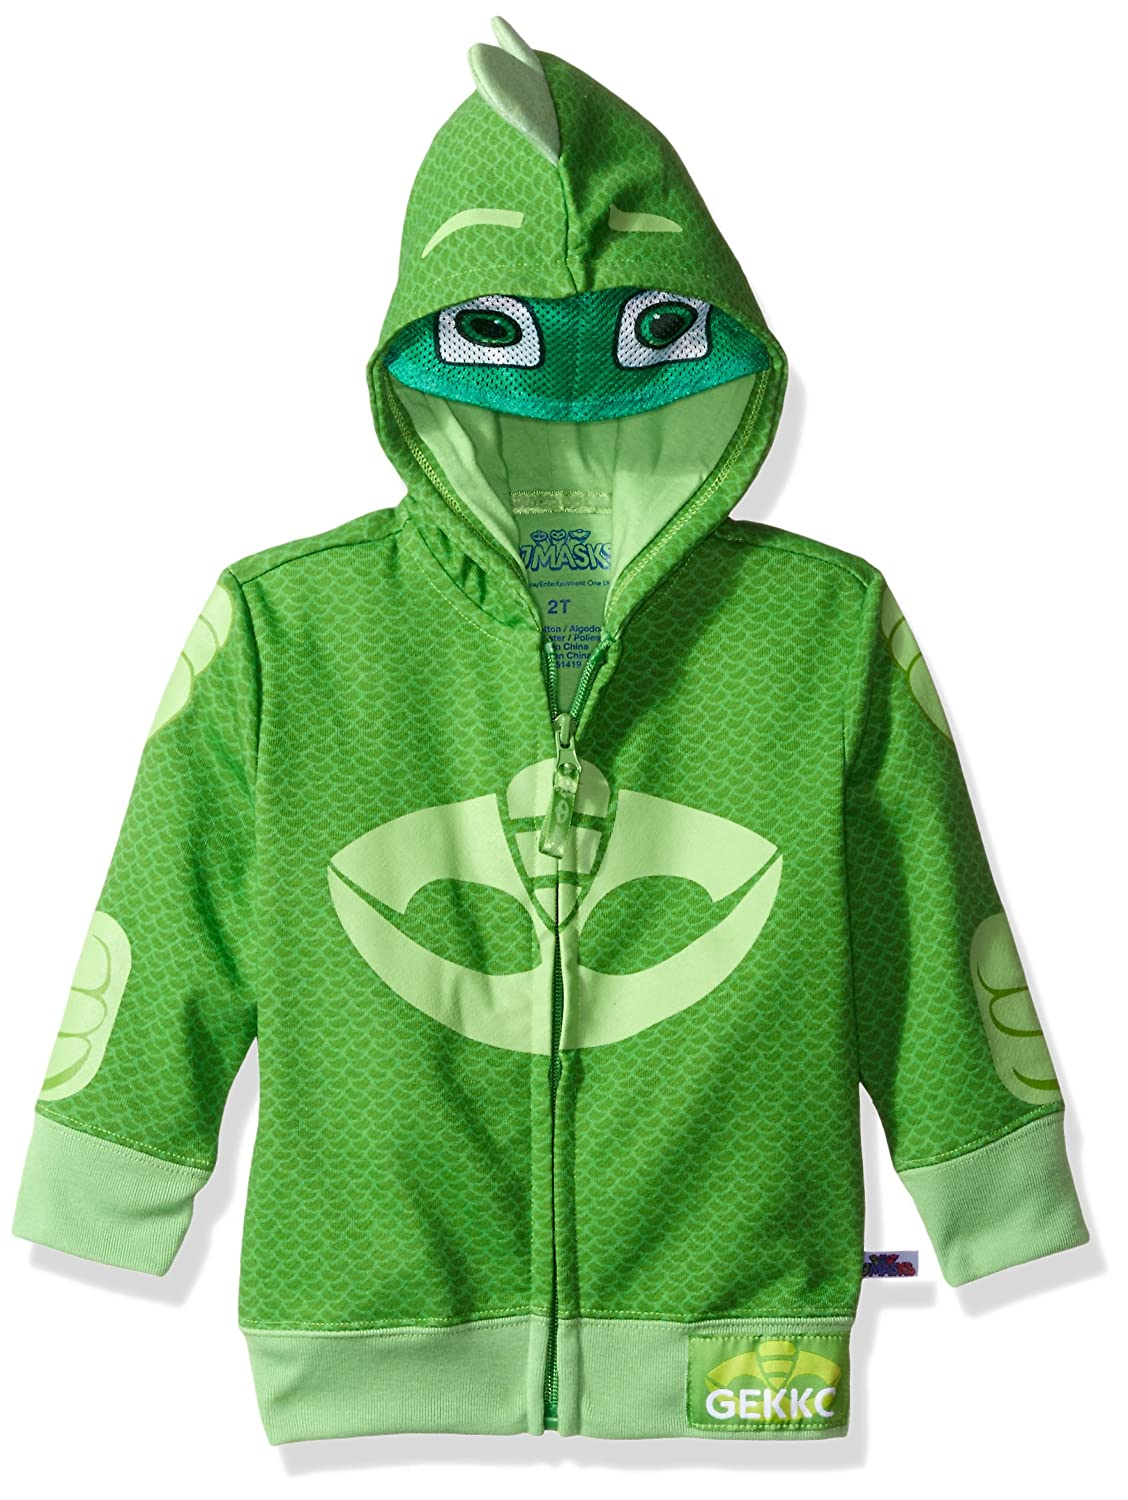 PJ Masks Gekko Toddler Boy Fancy dress costume Hooded Sweatshirt 2T PJST014